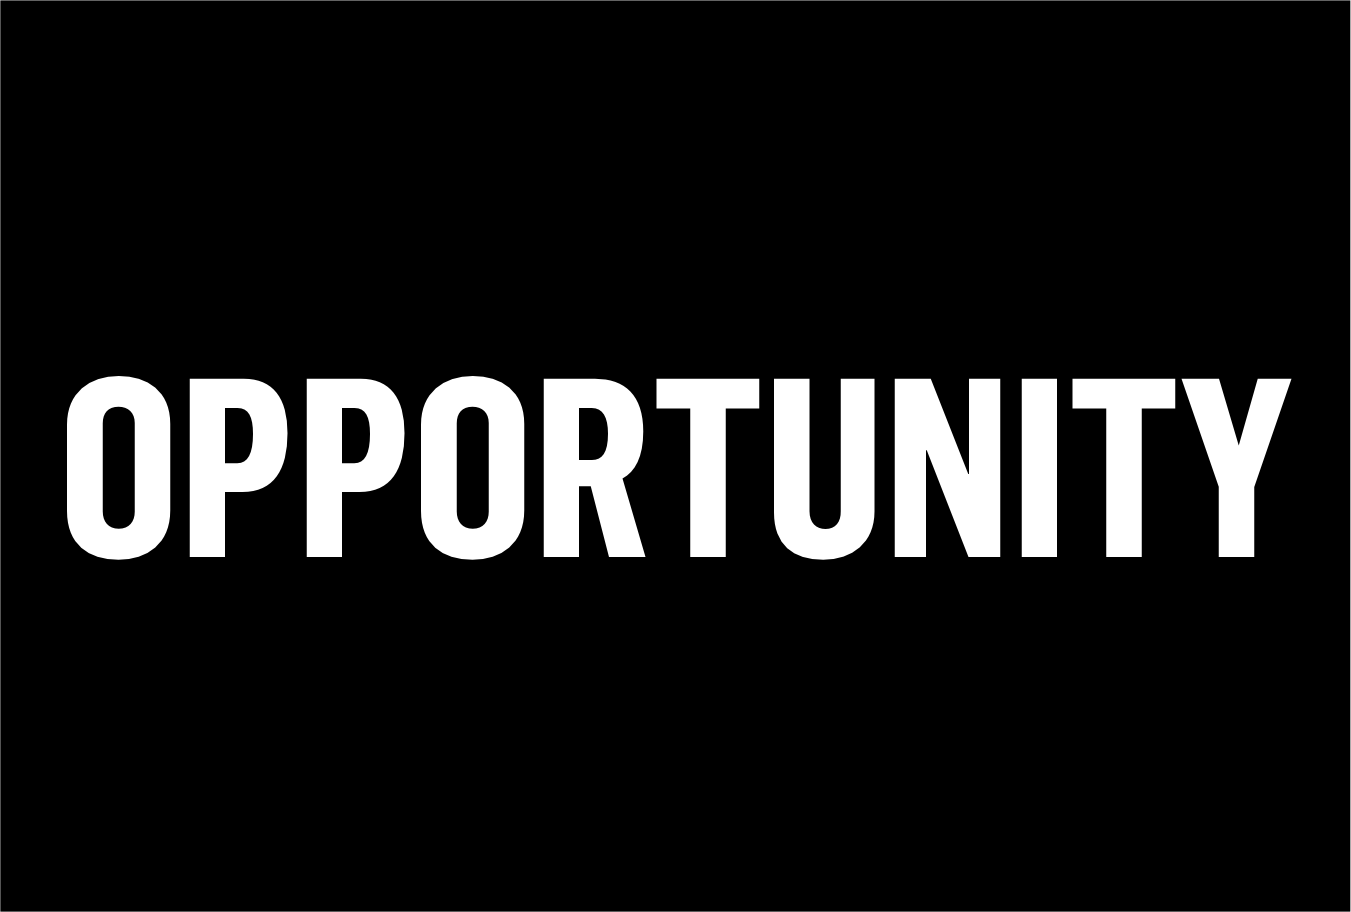 opportunity-card-black